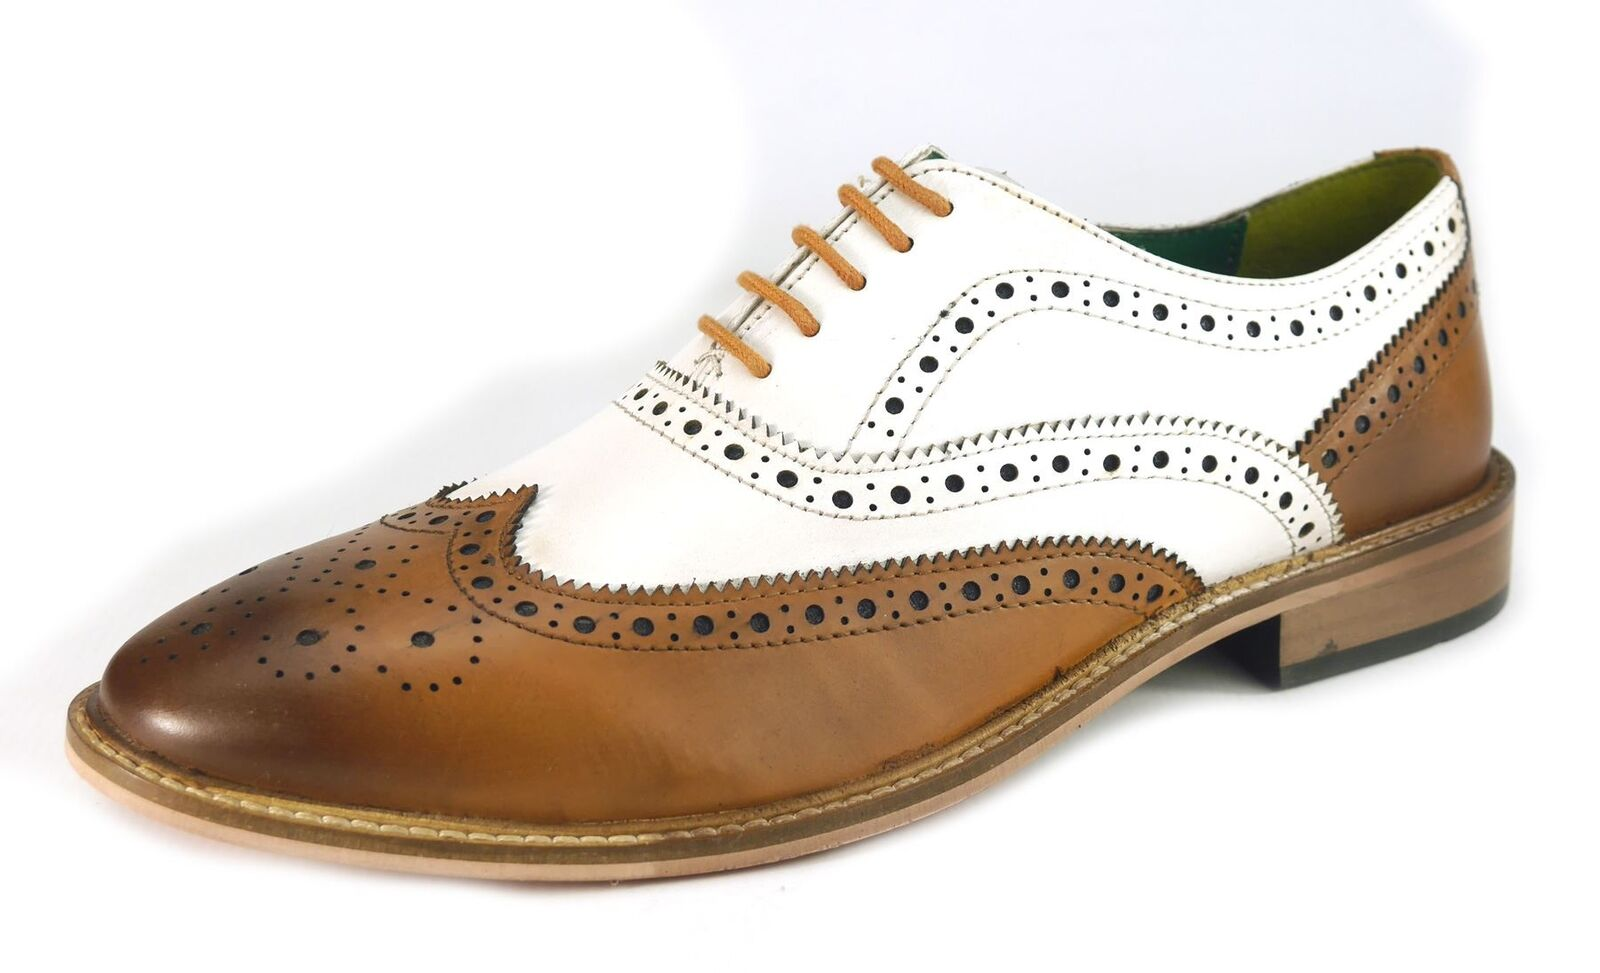 Frank James Zeno Brogues Lace Up Formal Mens Leather shoes Tan   White